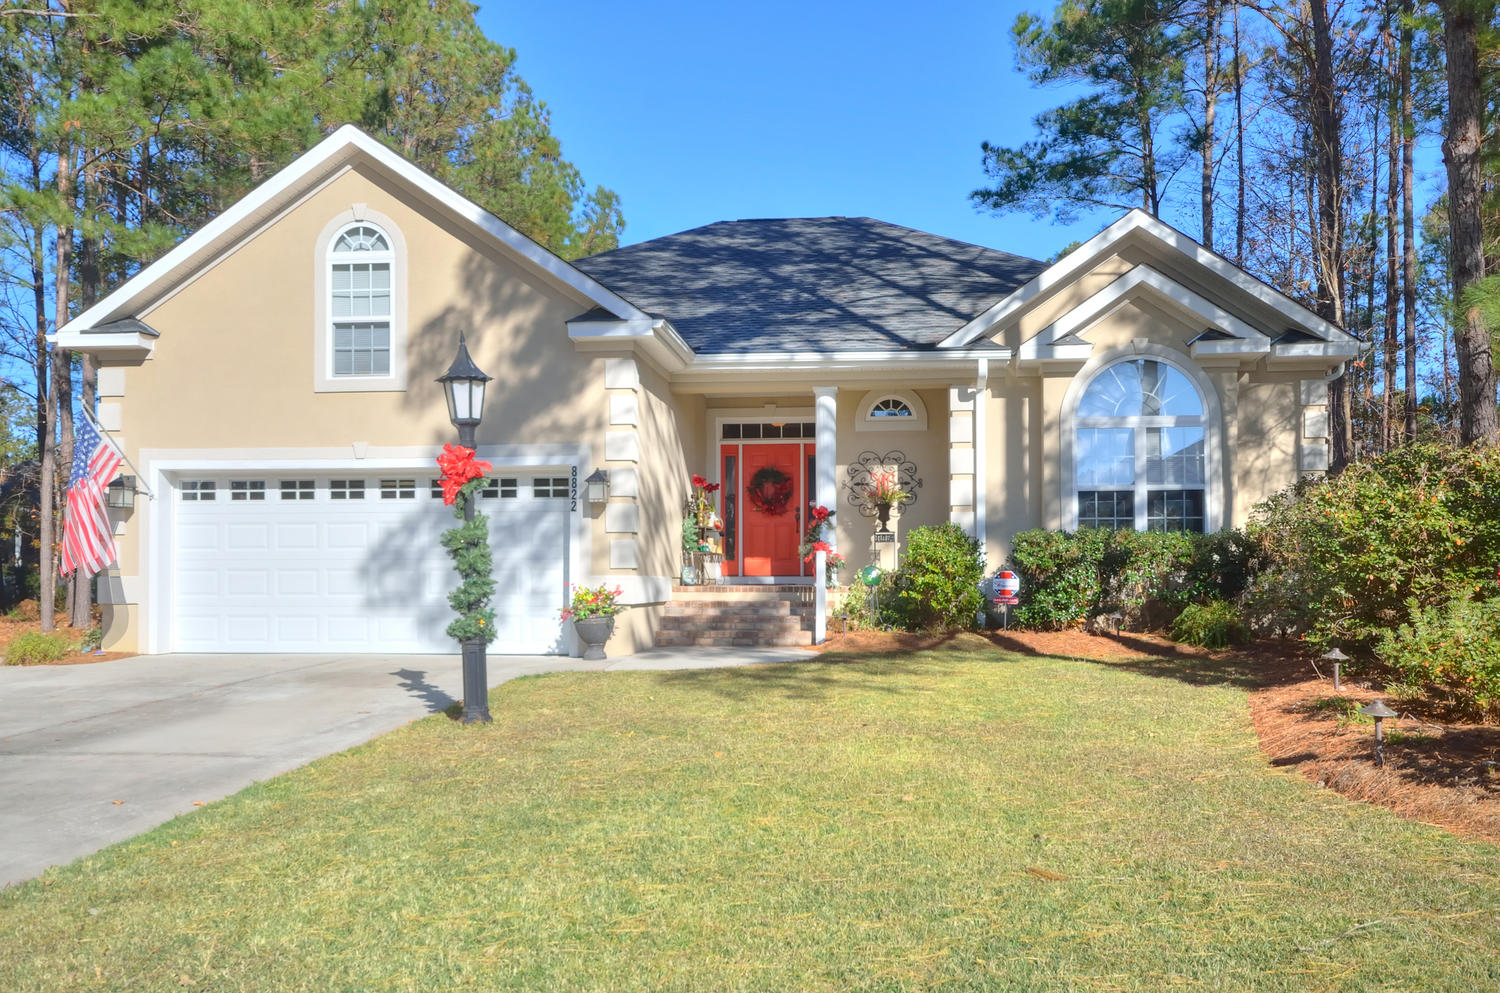 Single Family Home for Sale at Savvy Custom Home 8822 Rutherford Drive NW Calabash, North Carolina, 28467 United States